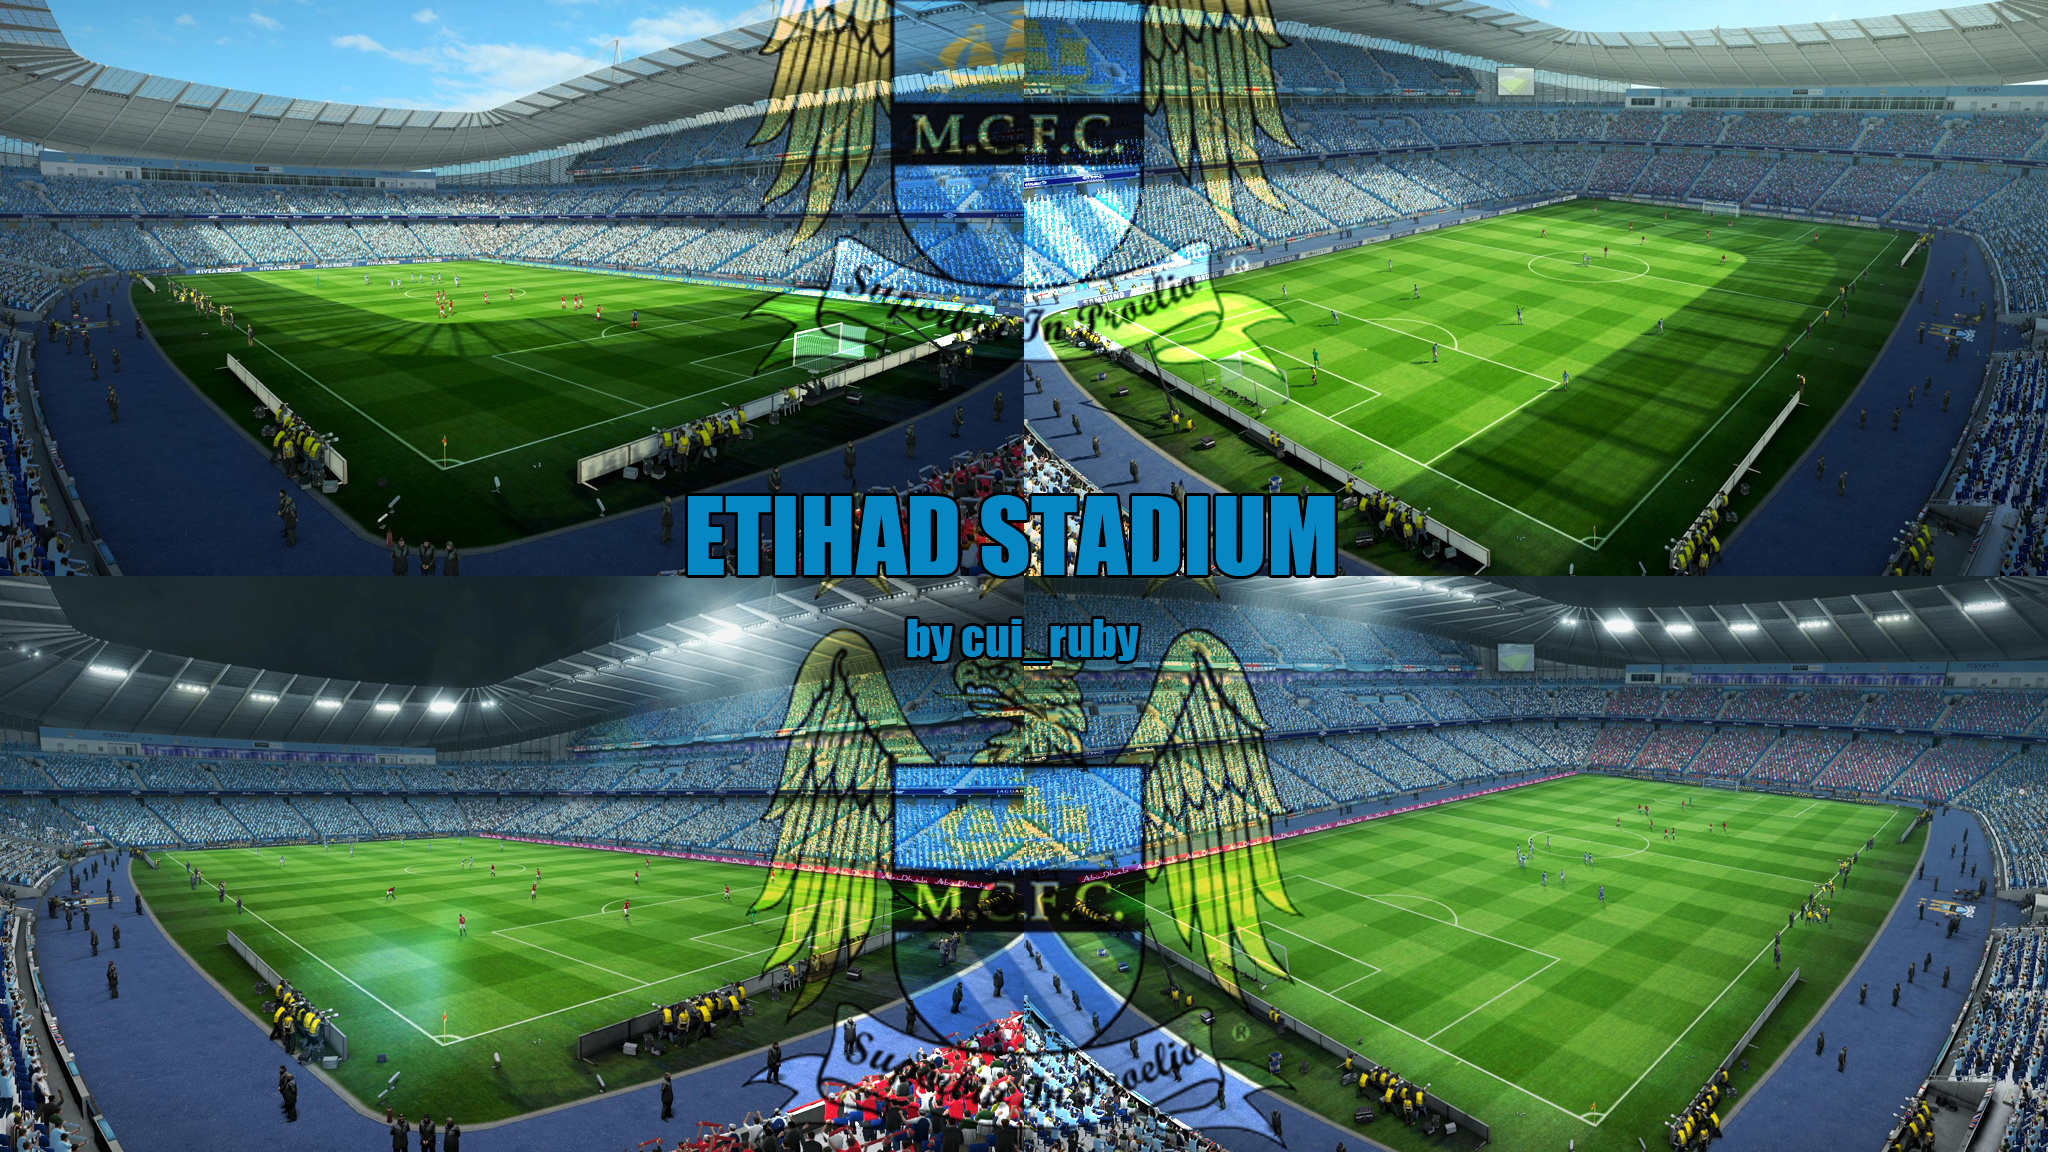 etihad stadium - photo #32